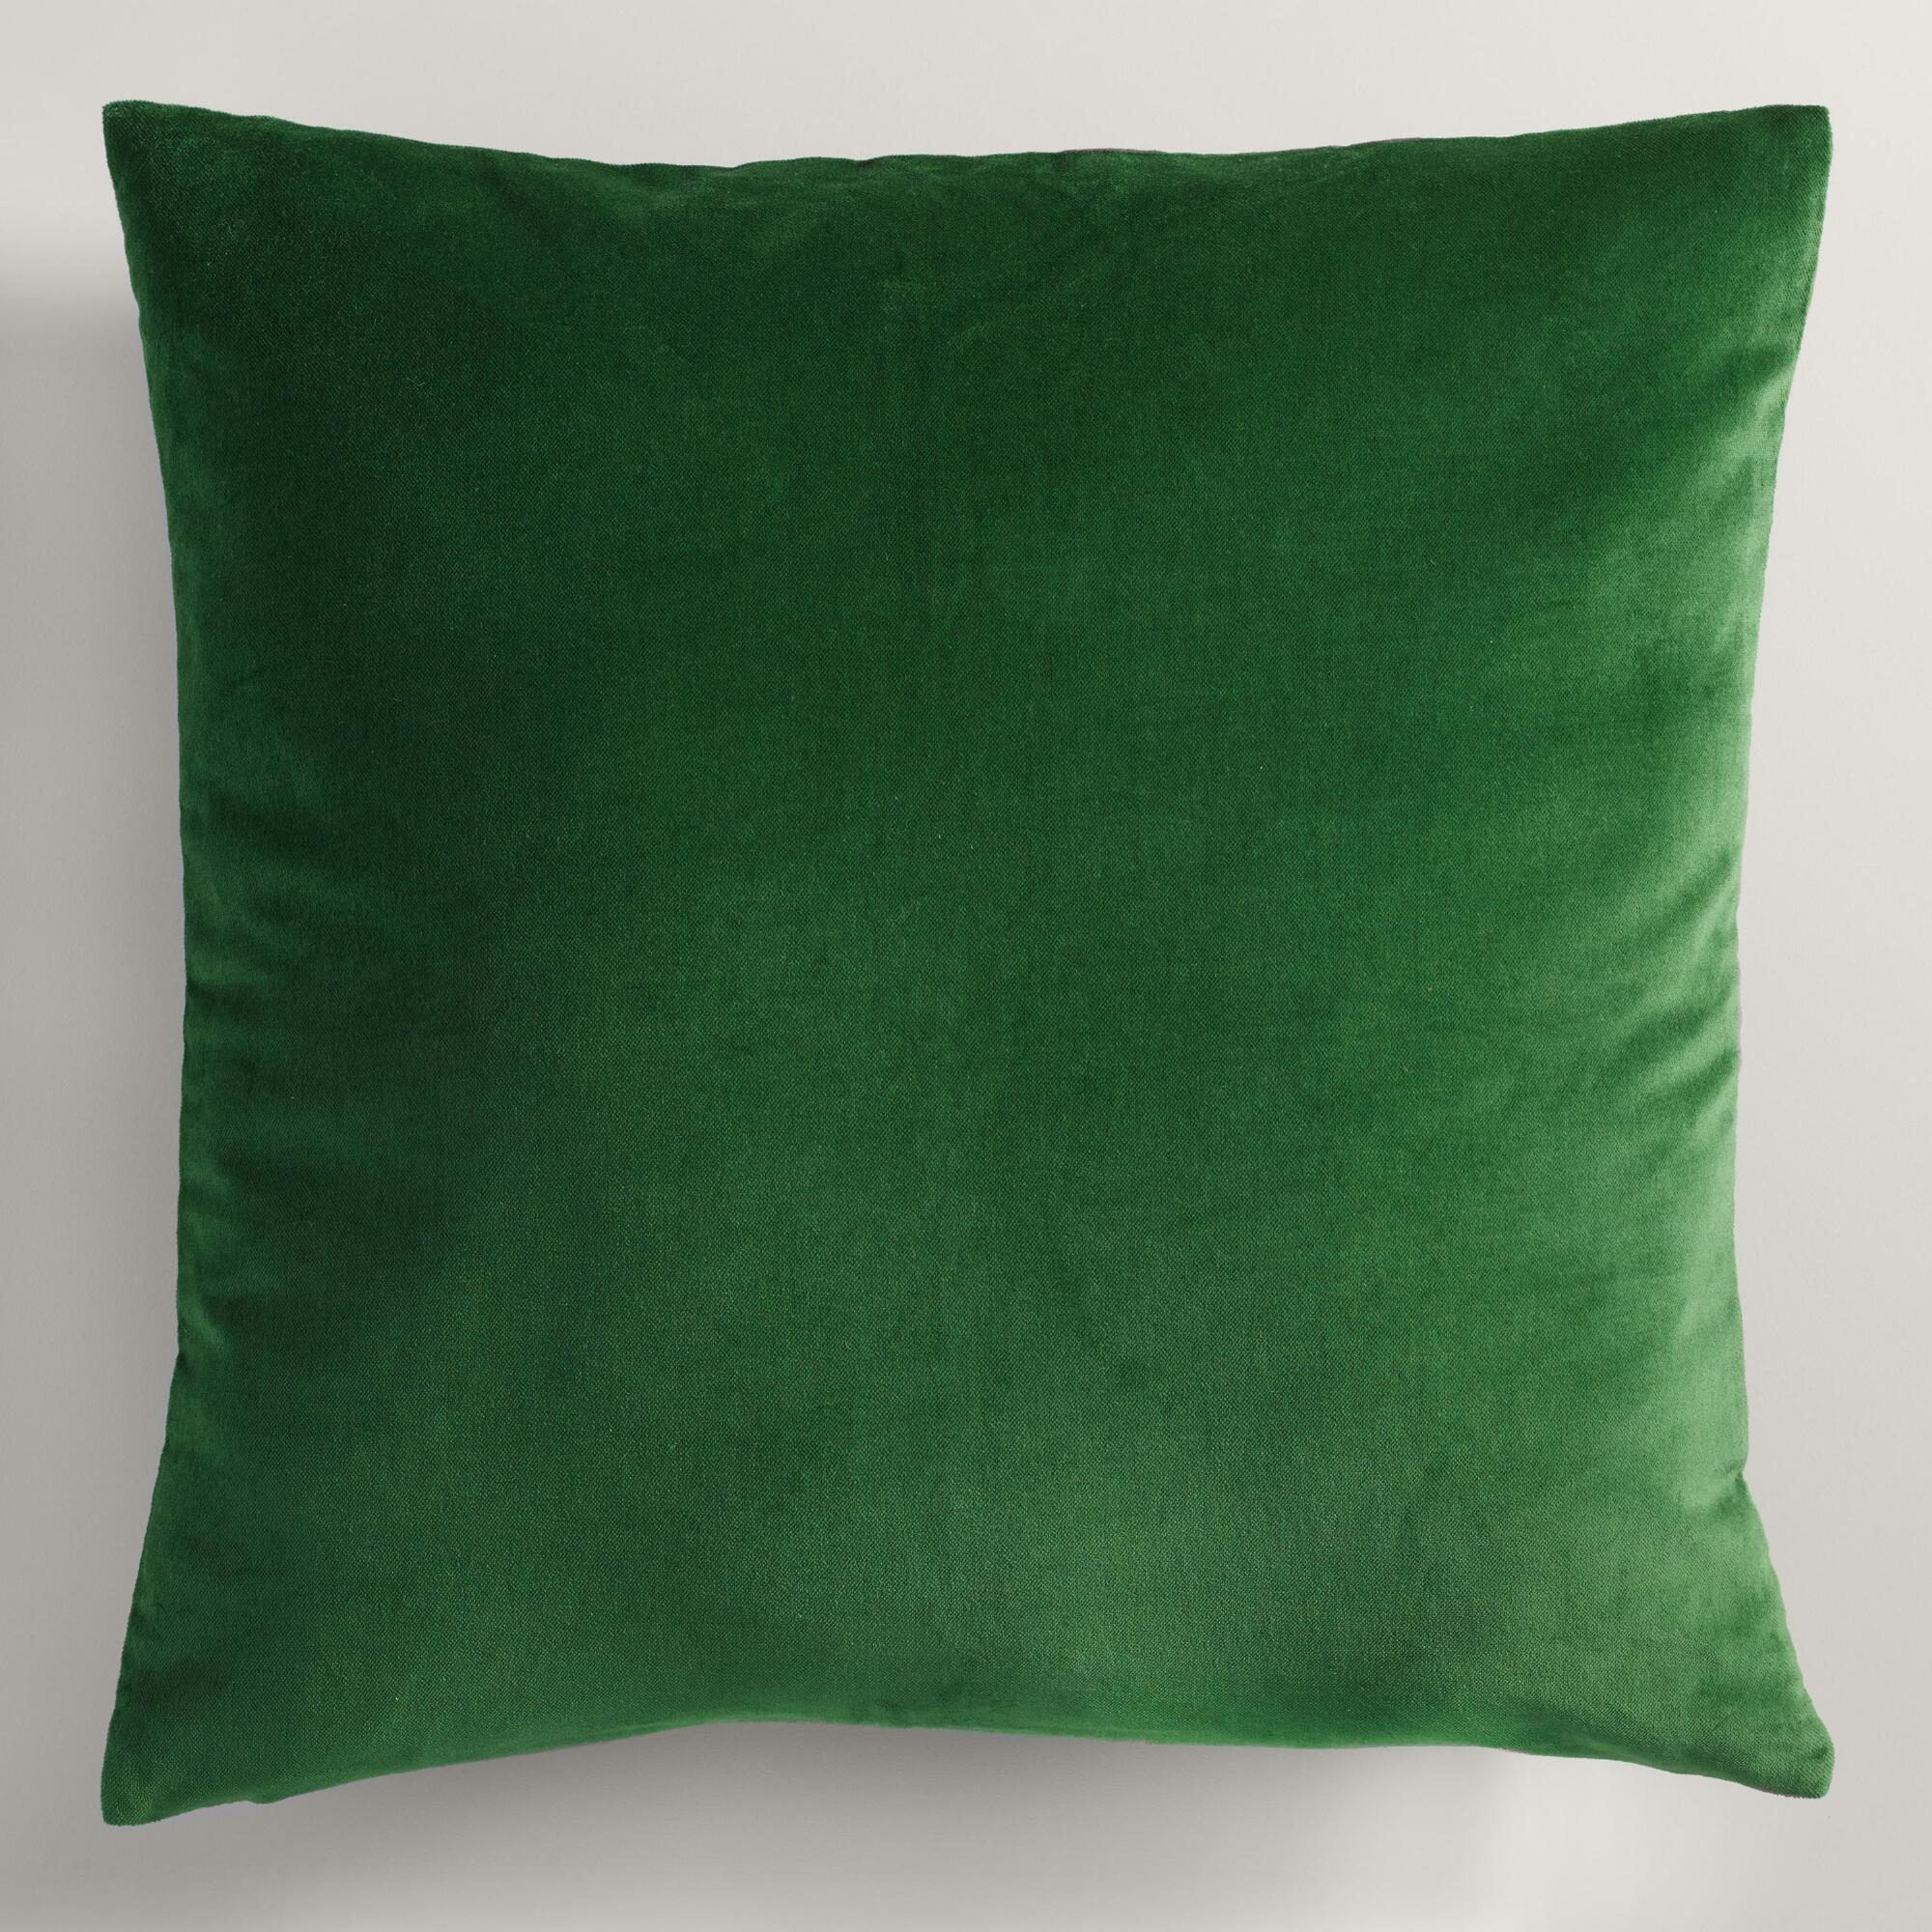 Throw Pillows Newport : Green Velvet Throw Pillow World Market